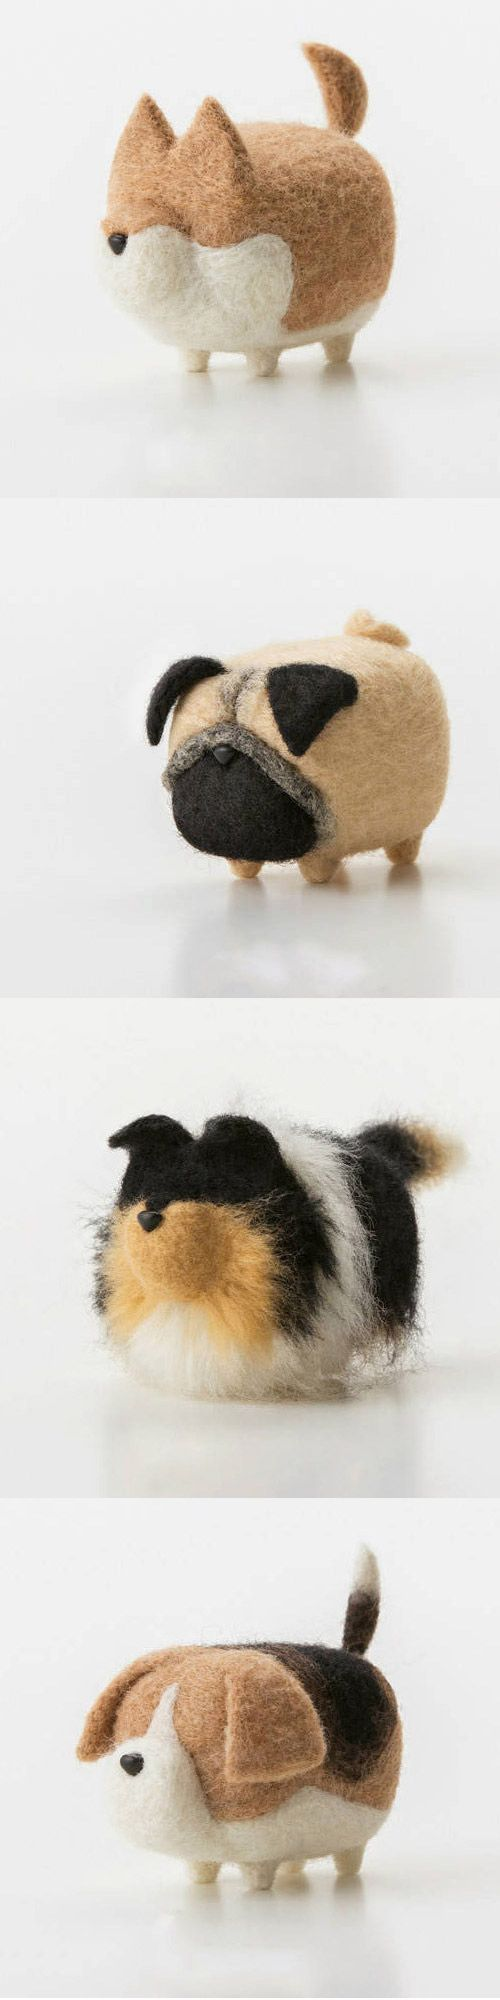 Make one special photo charms for your pets, 100% compatible with your Pandora bracelets.  Handmade felted felting project cute animal dogs puppy felted wool doll